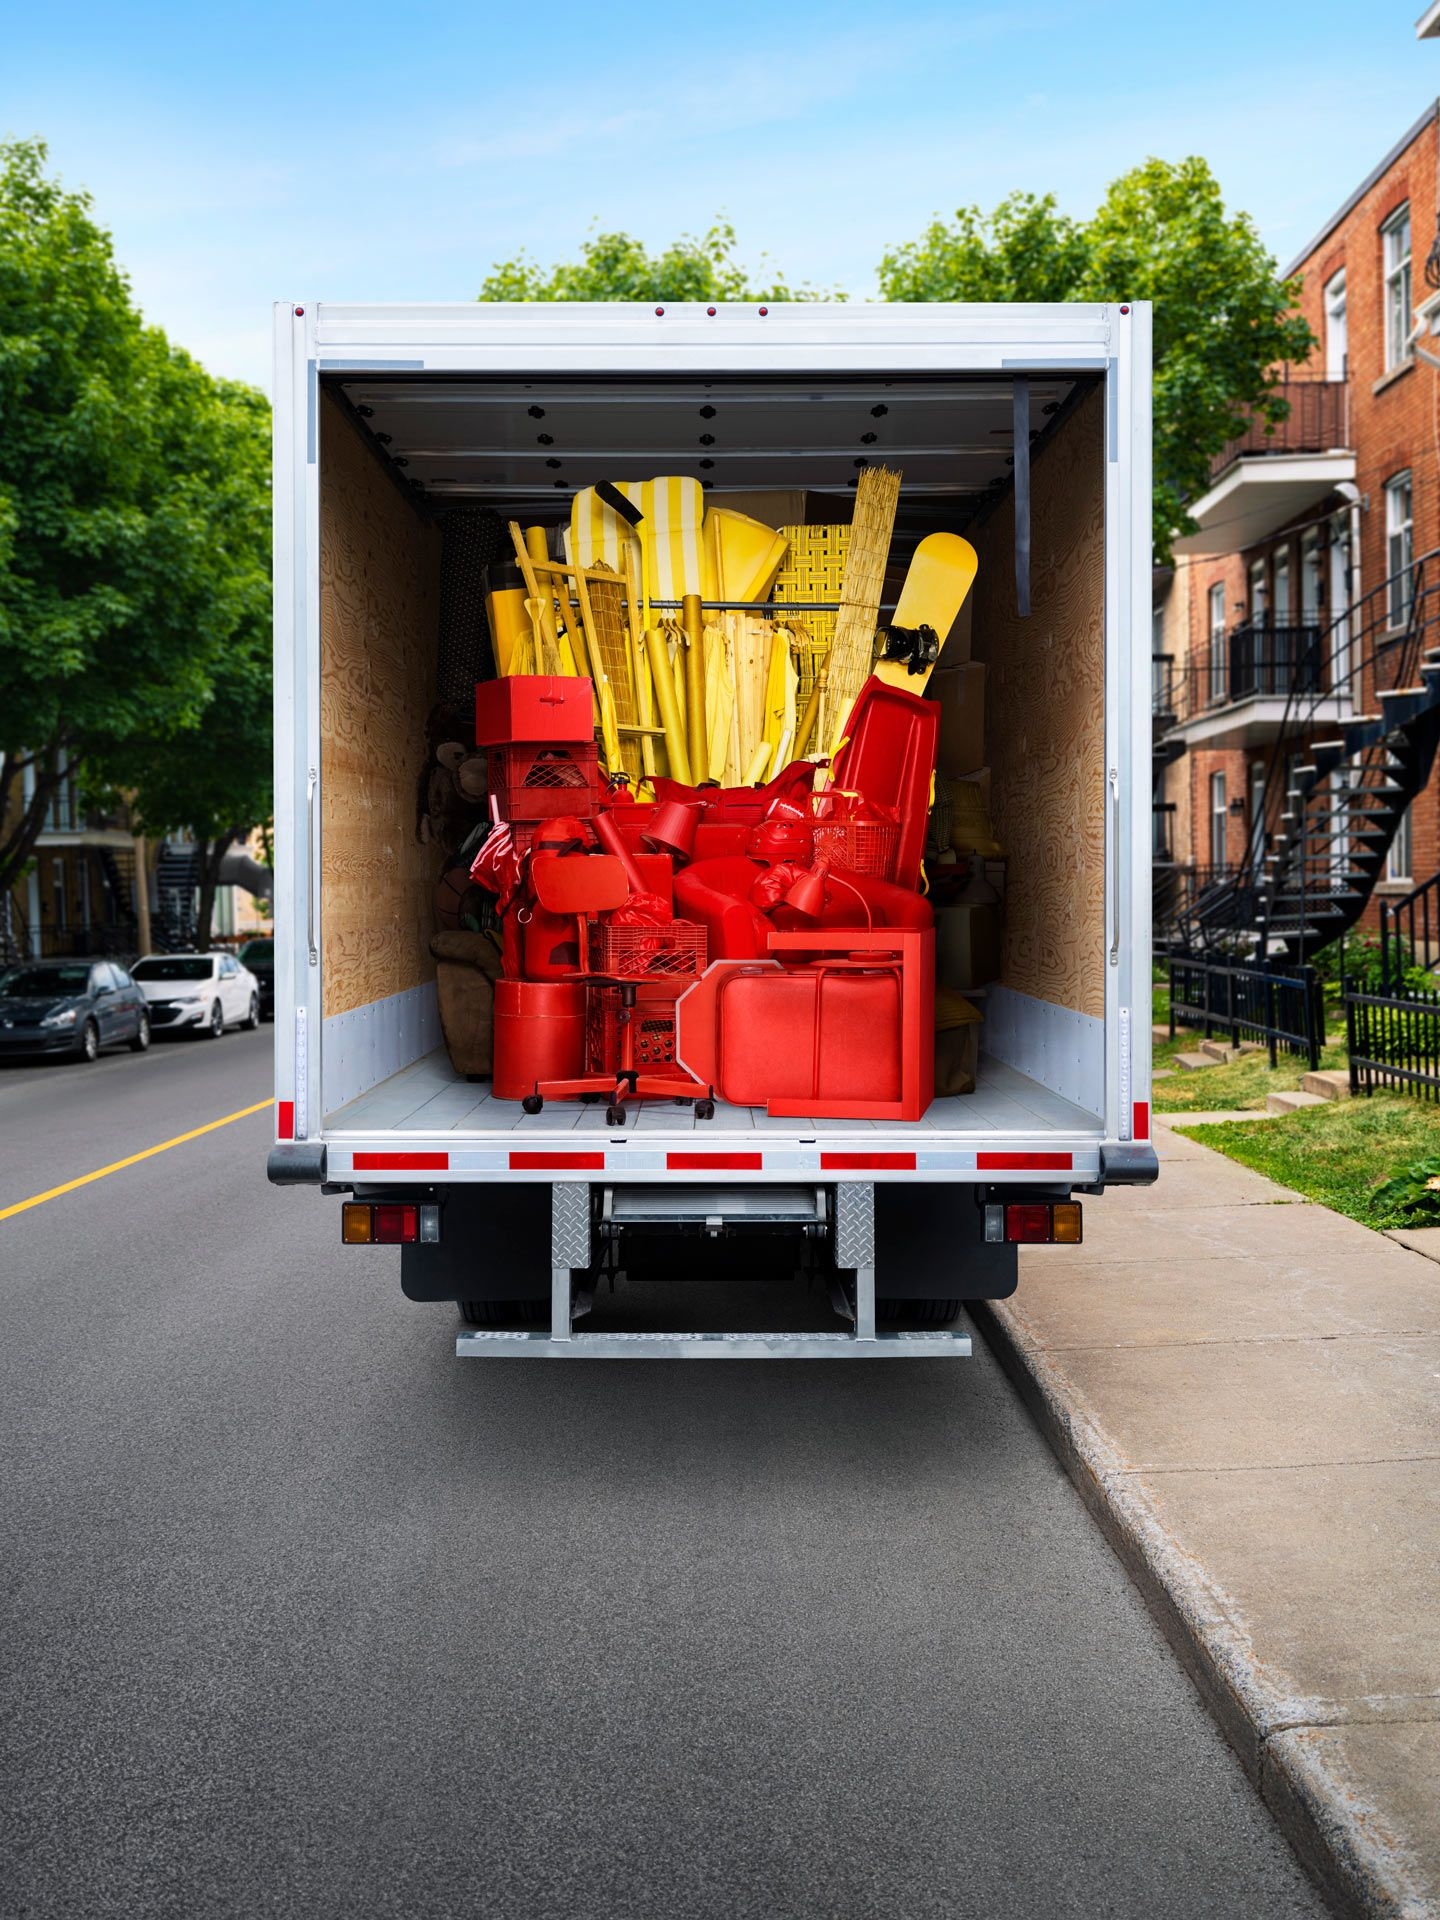 Bunch of fries made out of furniture in a moving truck for McDonald's by Simon Duhamel